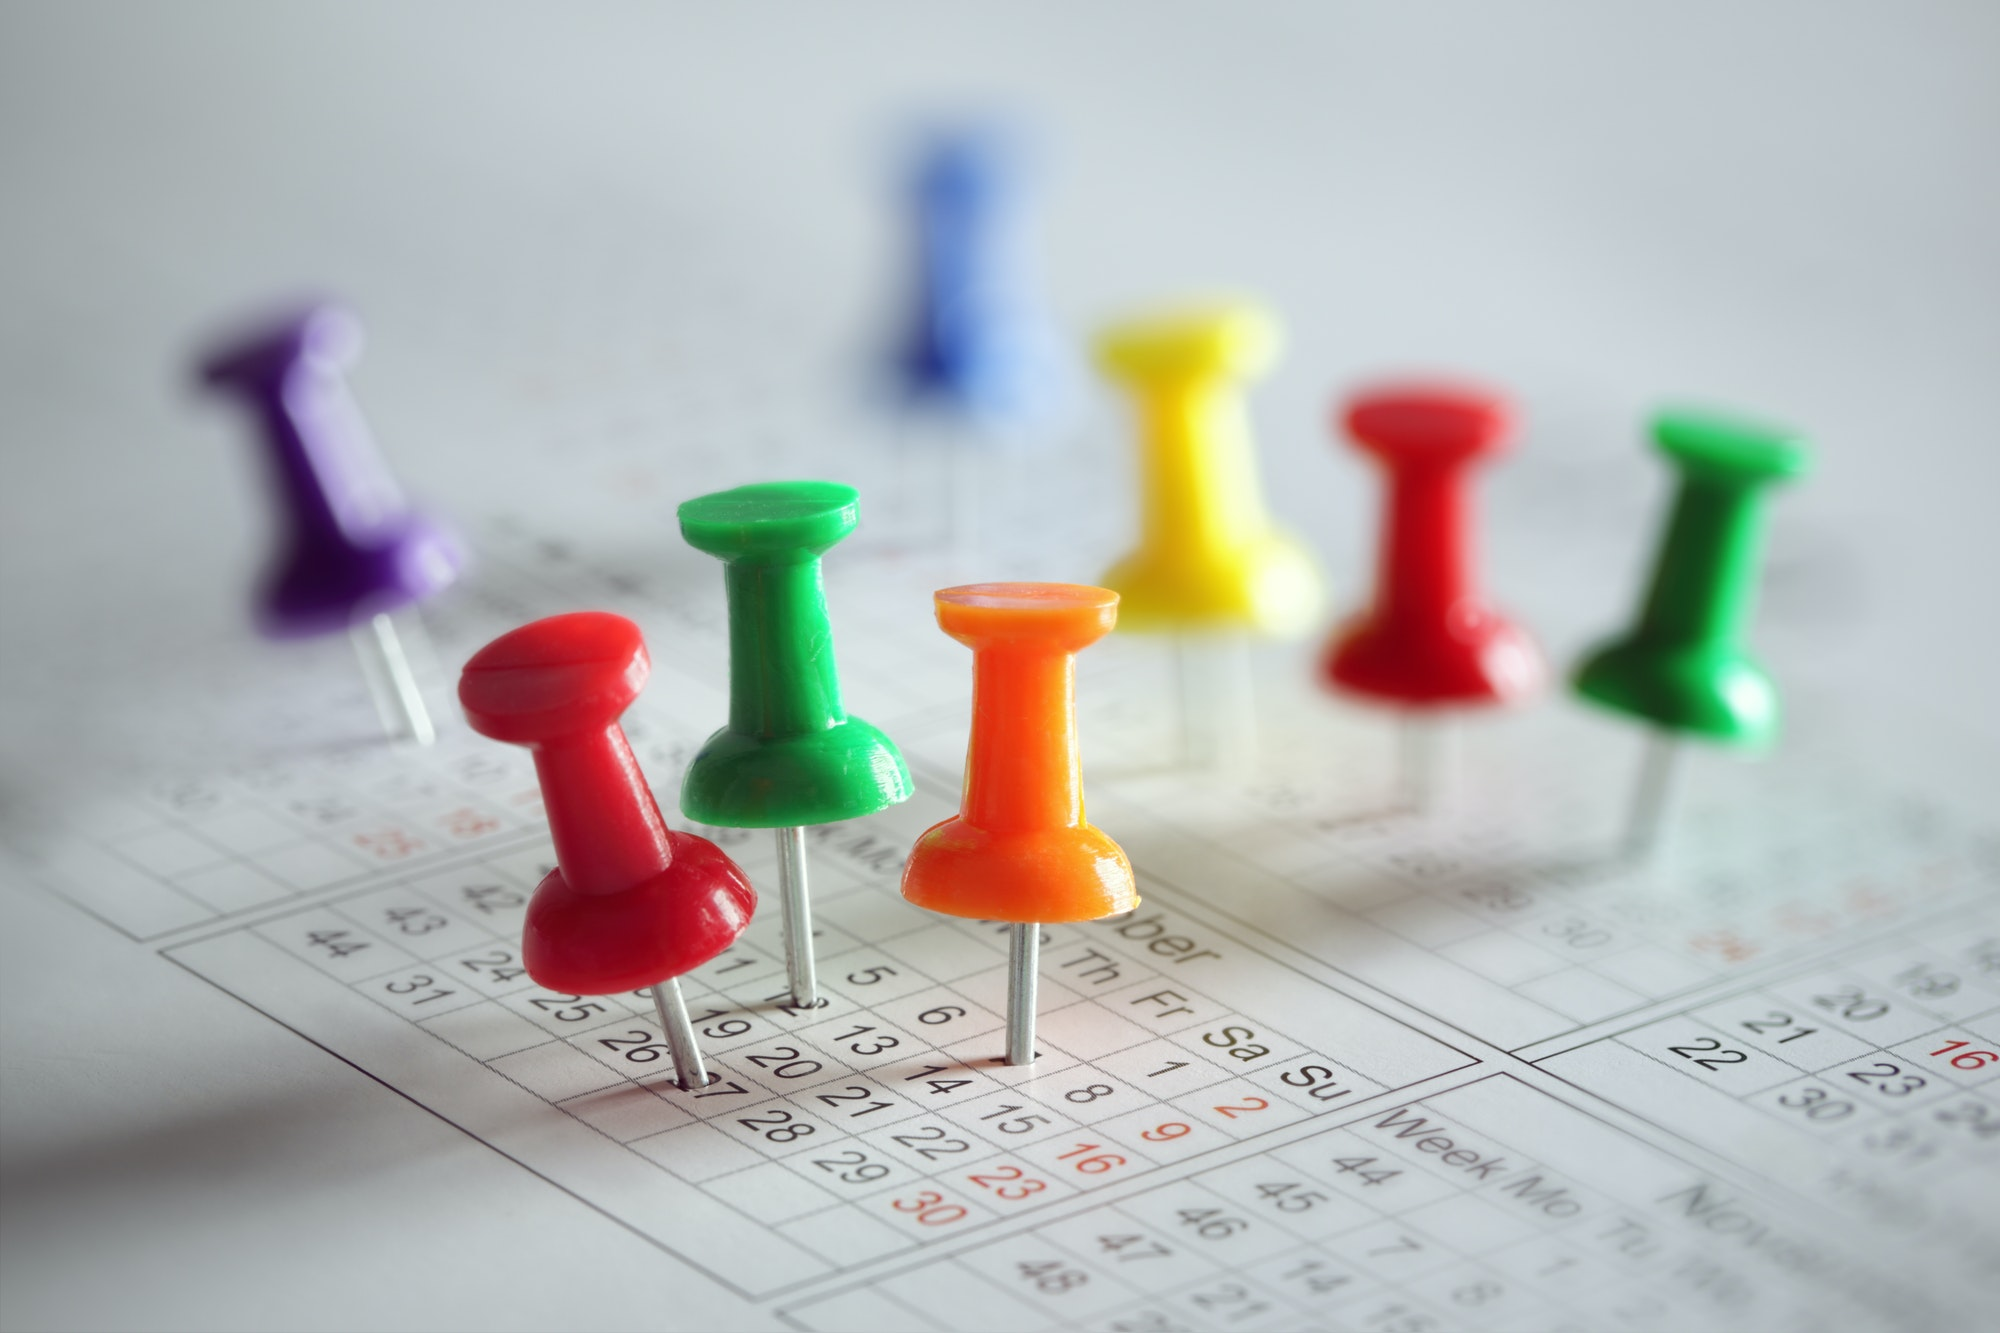 Image of push pins in a calendar